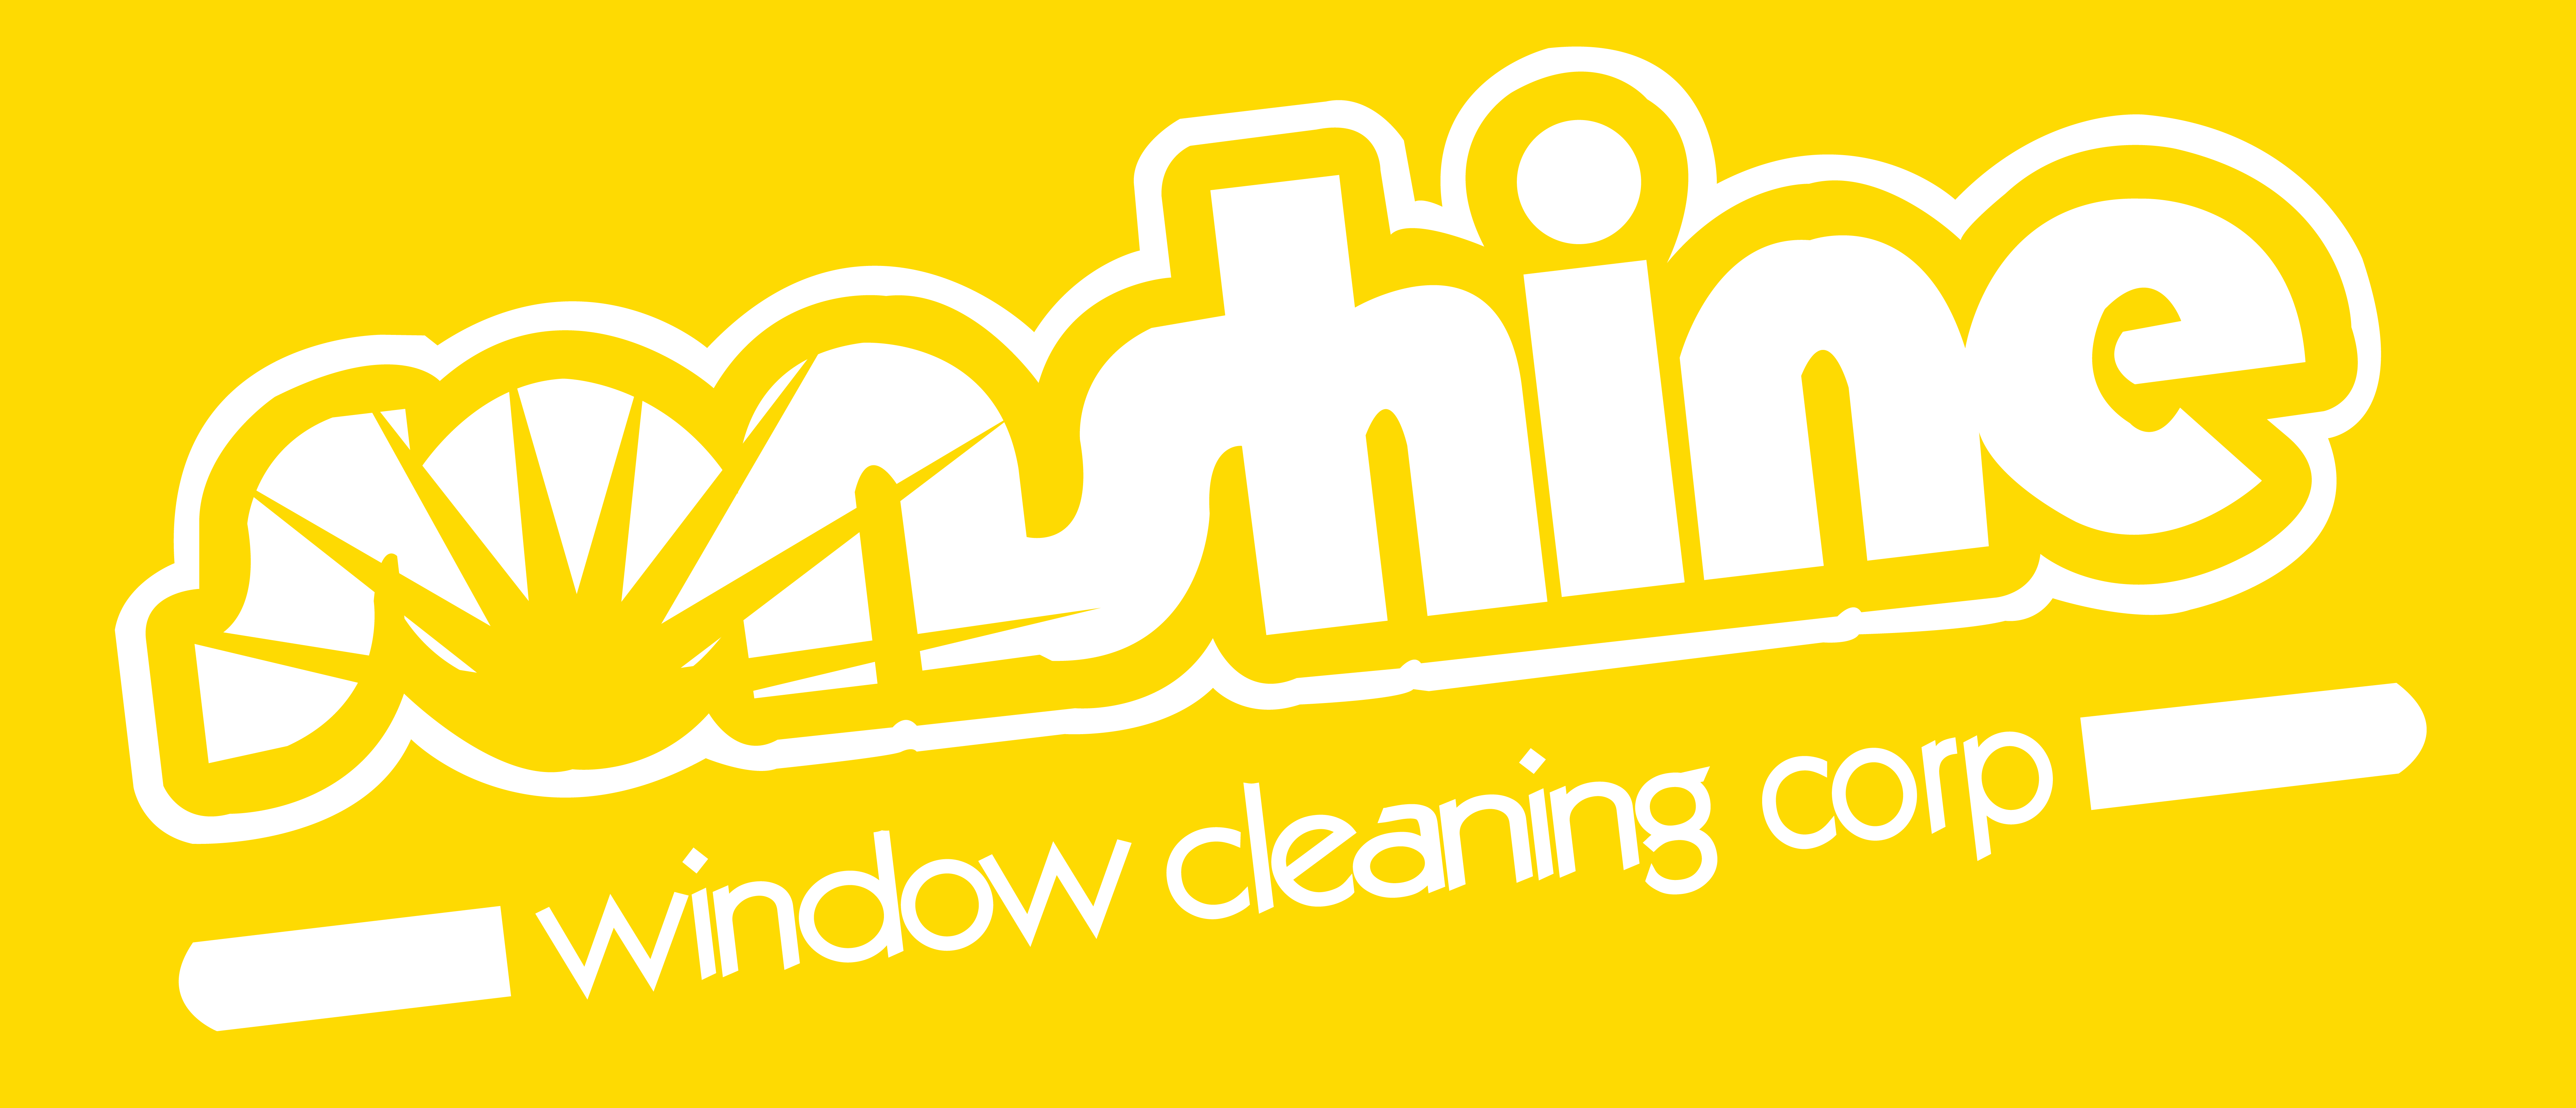 Ultrasonic Blind Cleaning Sonshine Window Cleaning